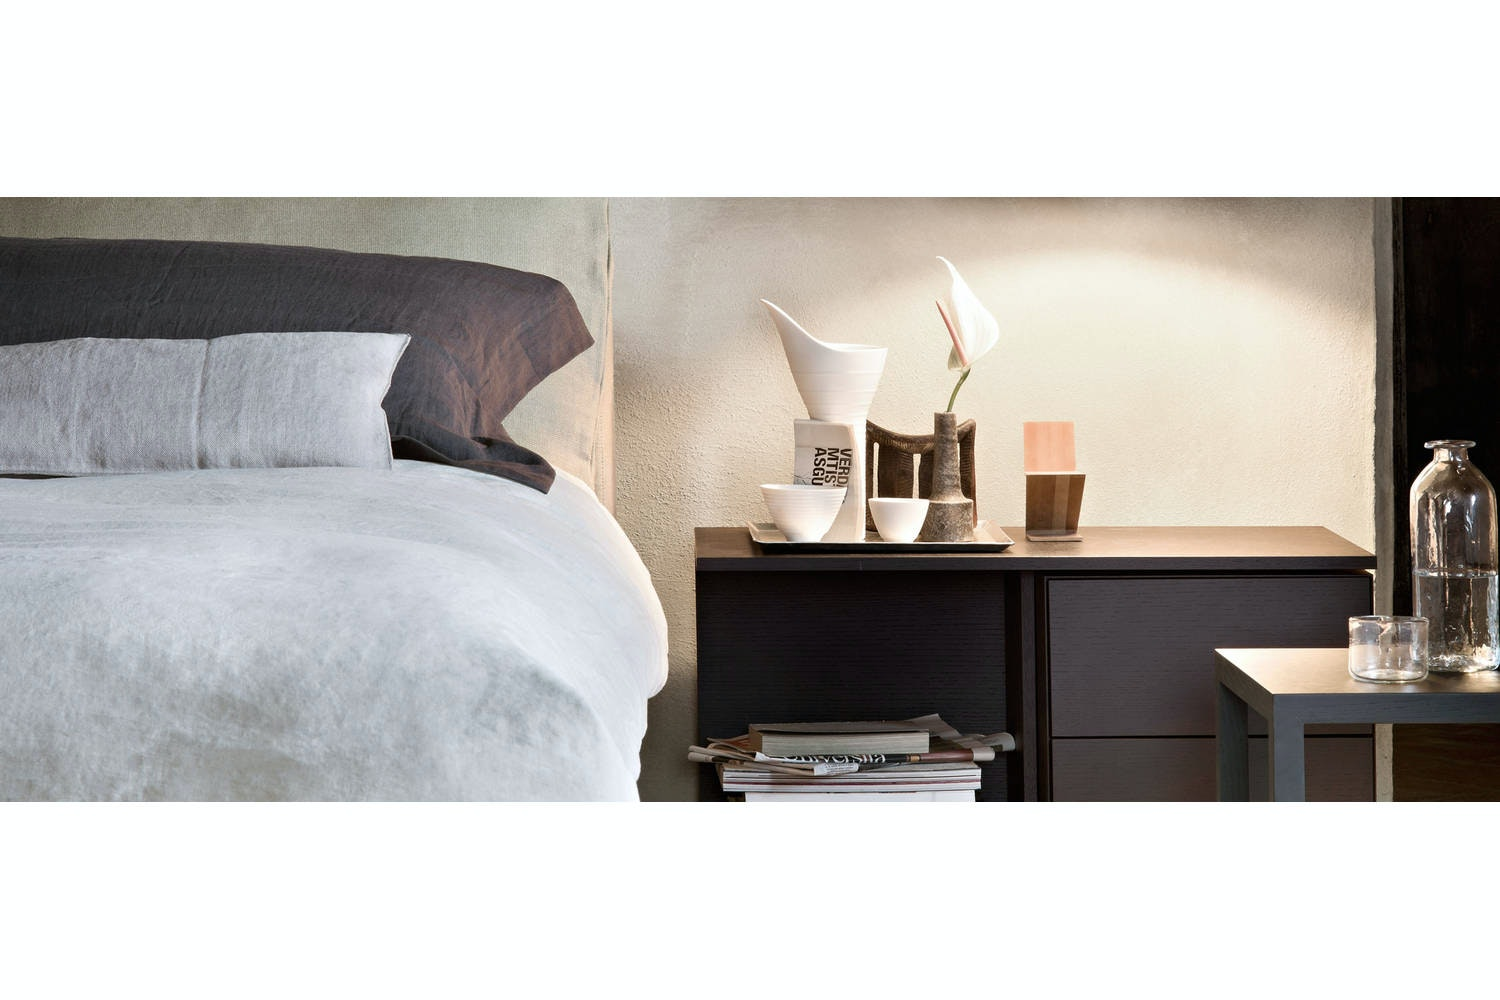 L32 Moov Bedside Table by Piero Lissoni for Cassina